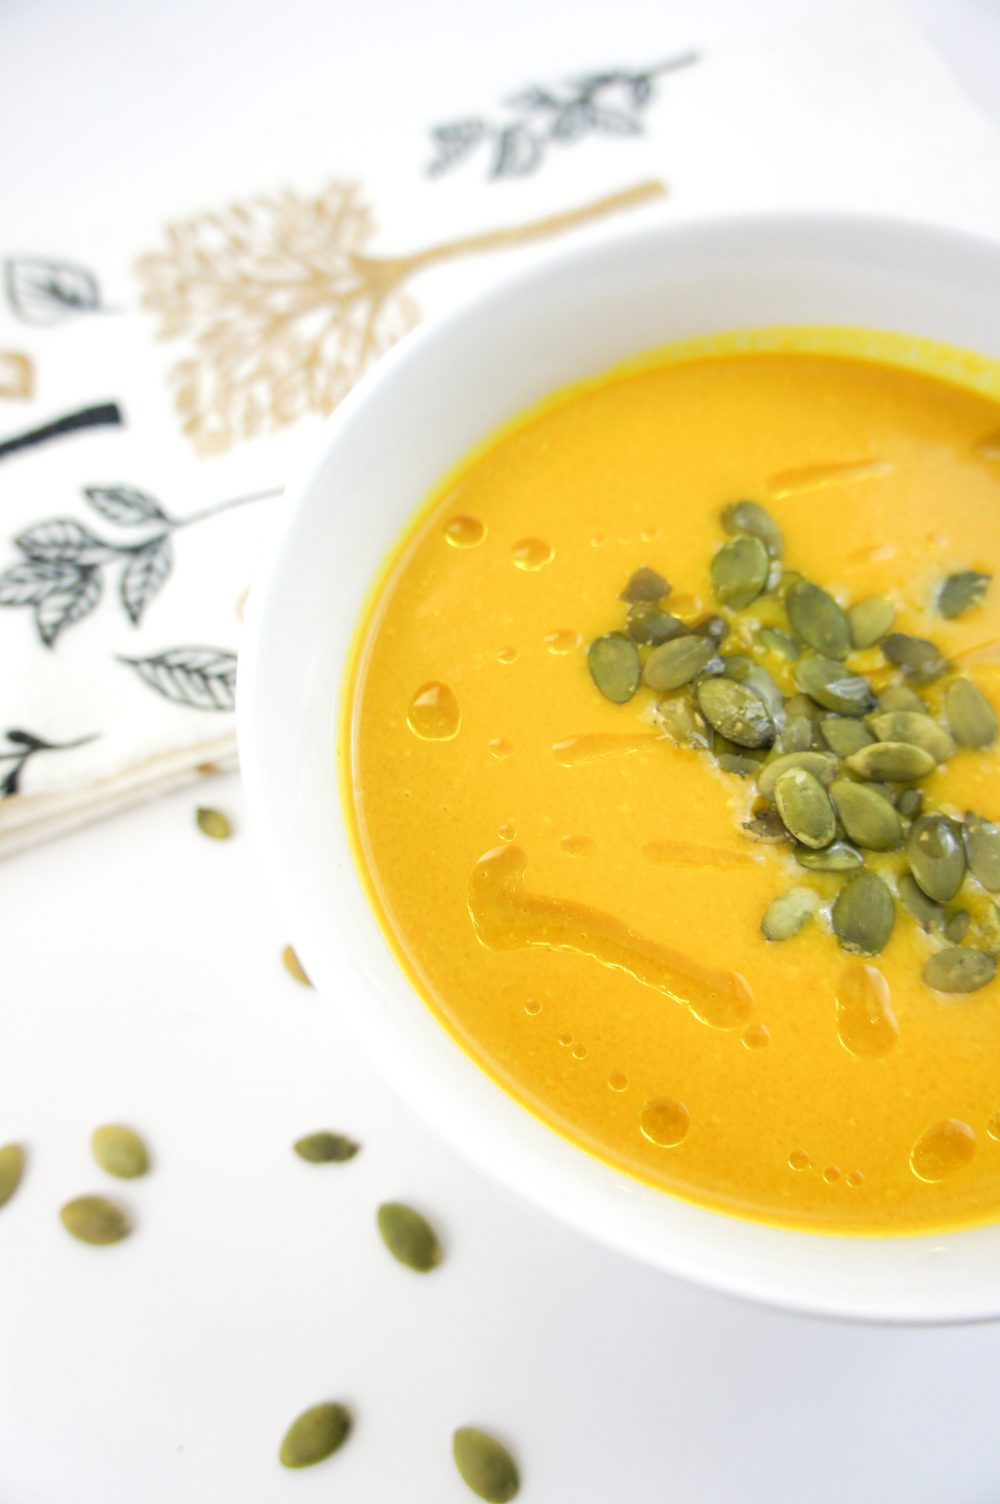 One of my all-time-favorite butternut squash soup recipes, adding my favs turmeric & ginger. Nourishing & delicious!